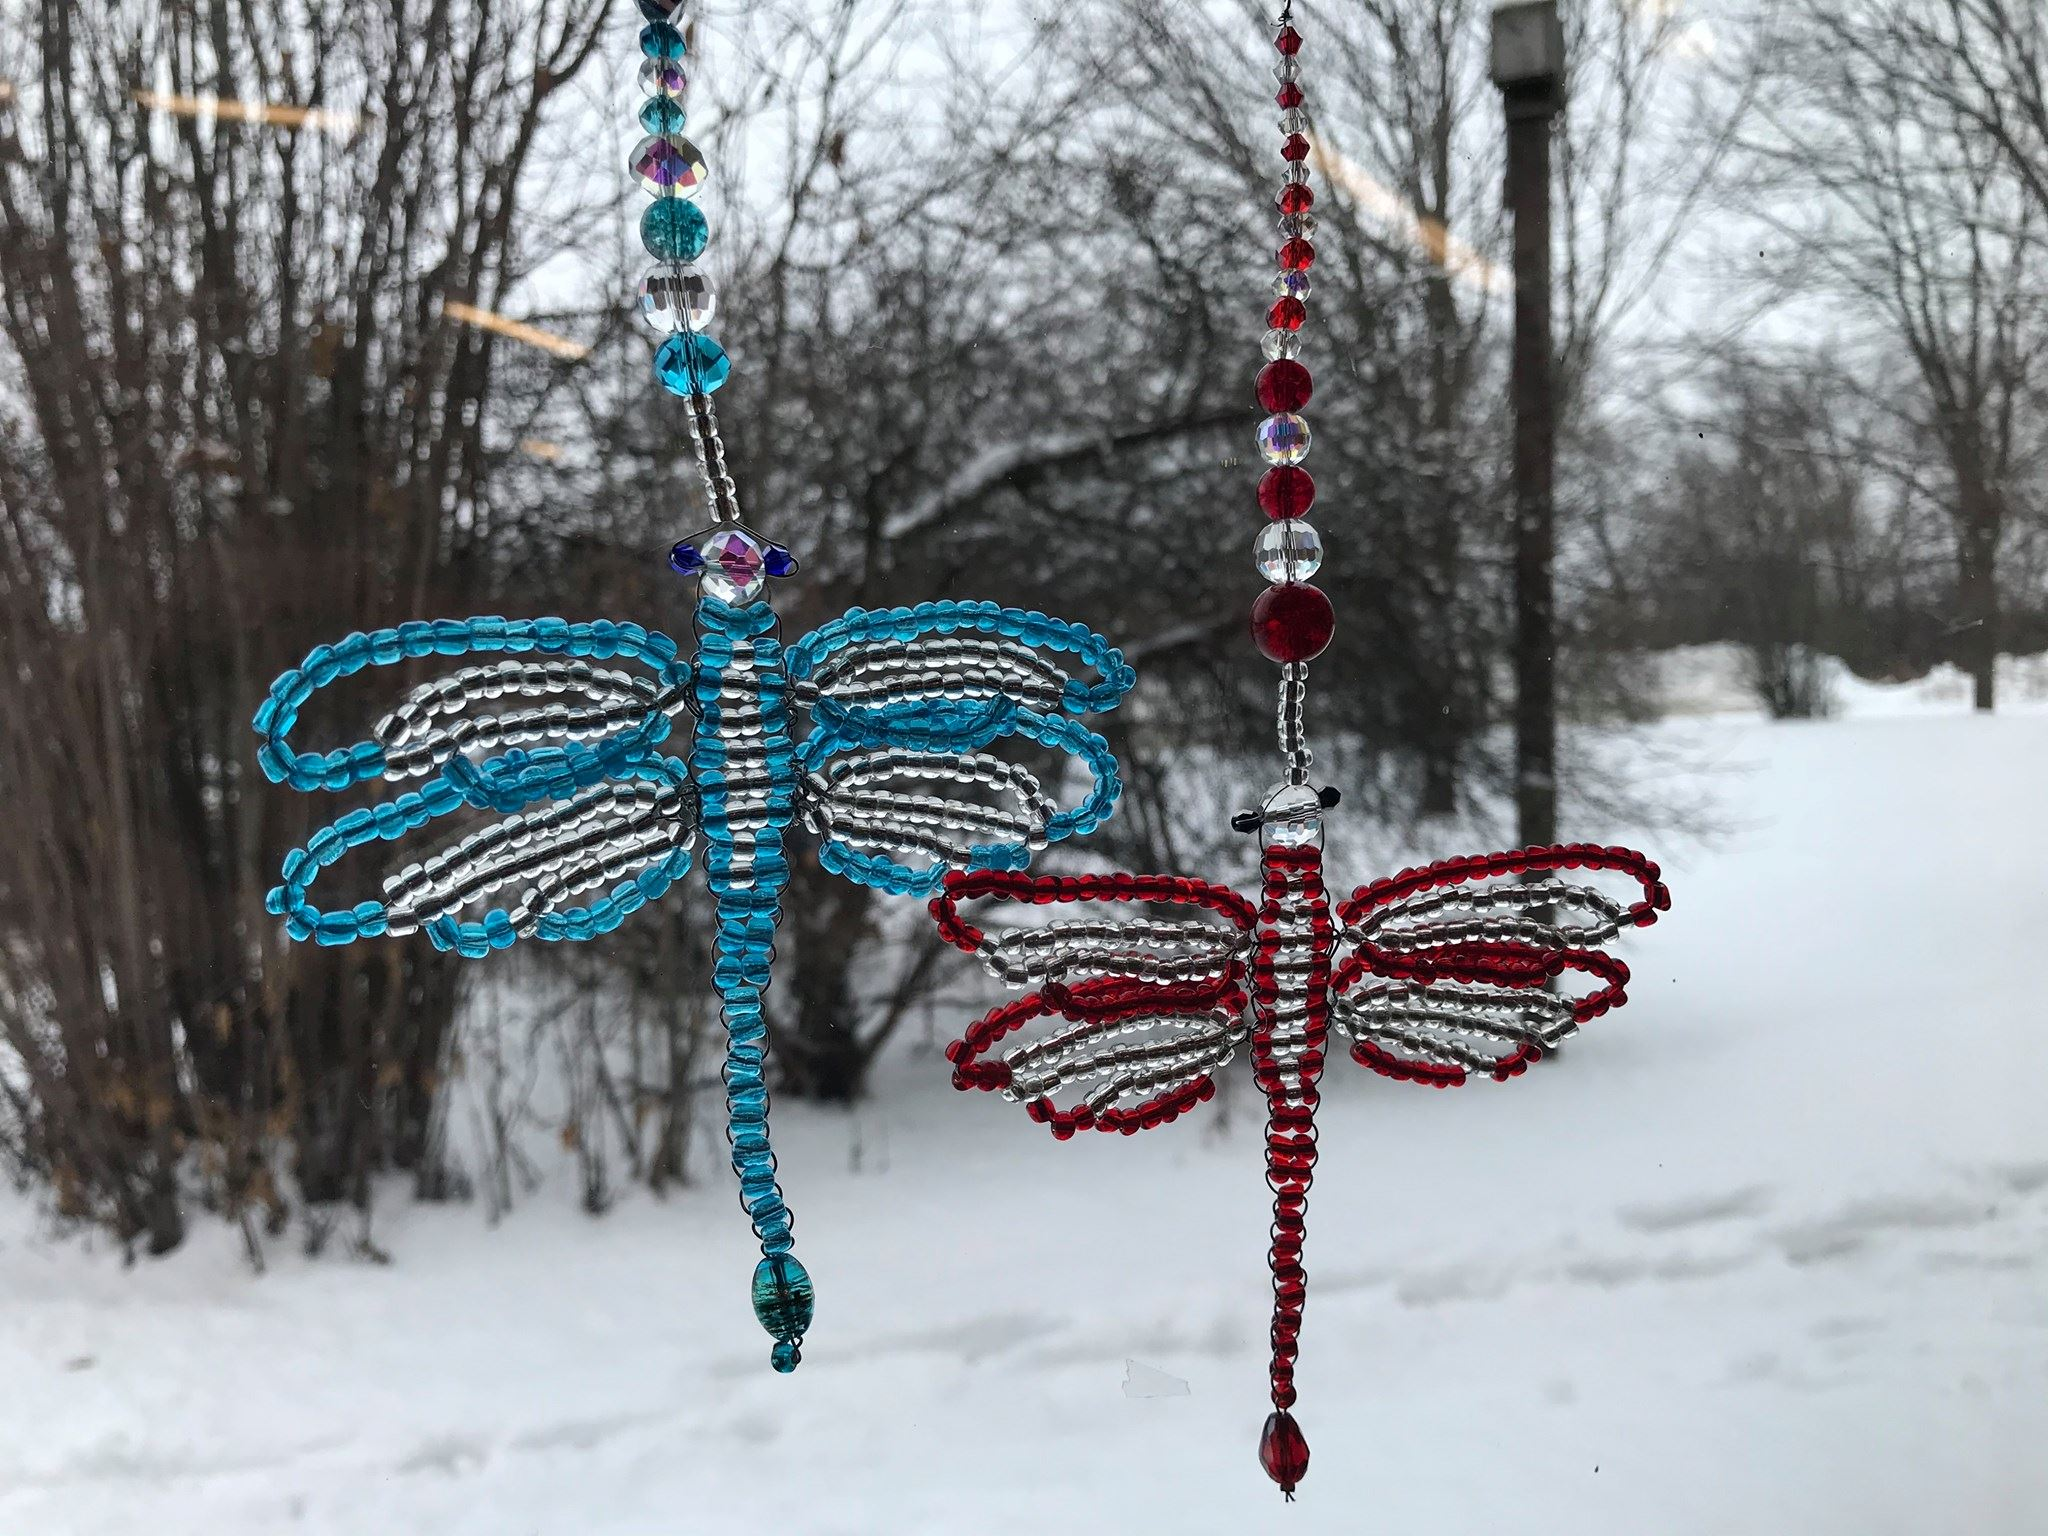 dragonfly suncatchers made up of gem beads displayed in front of window with snow in the background.